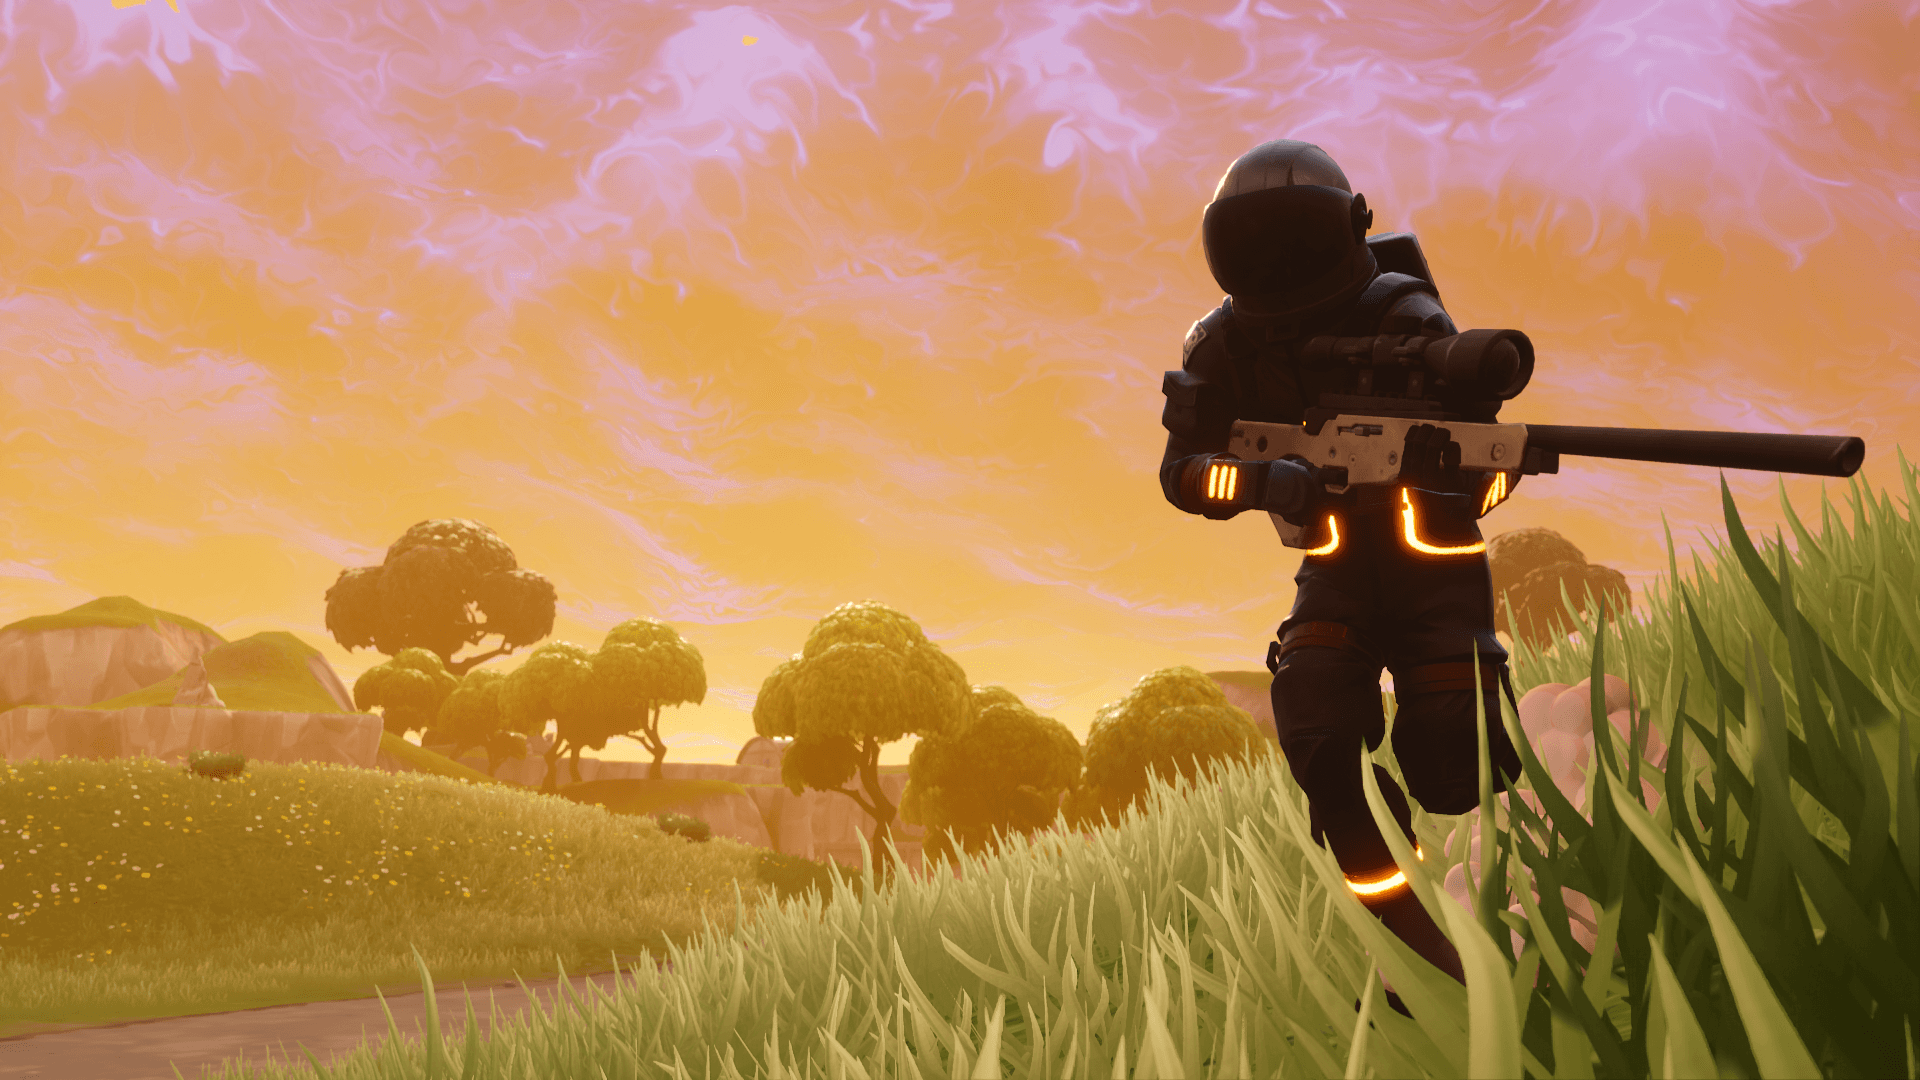 Wallpapers : fortnite, video games 1920x1080